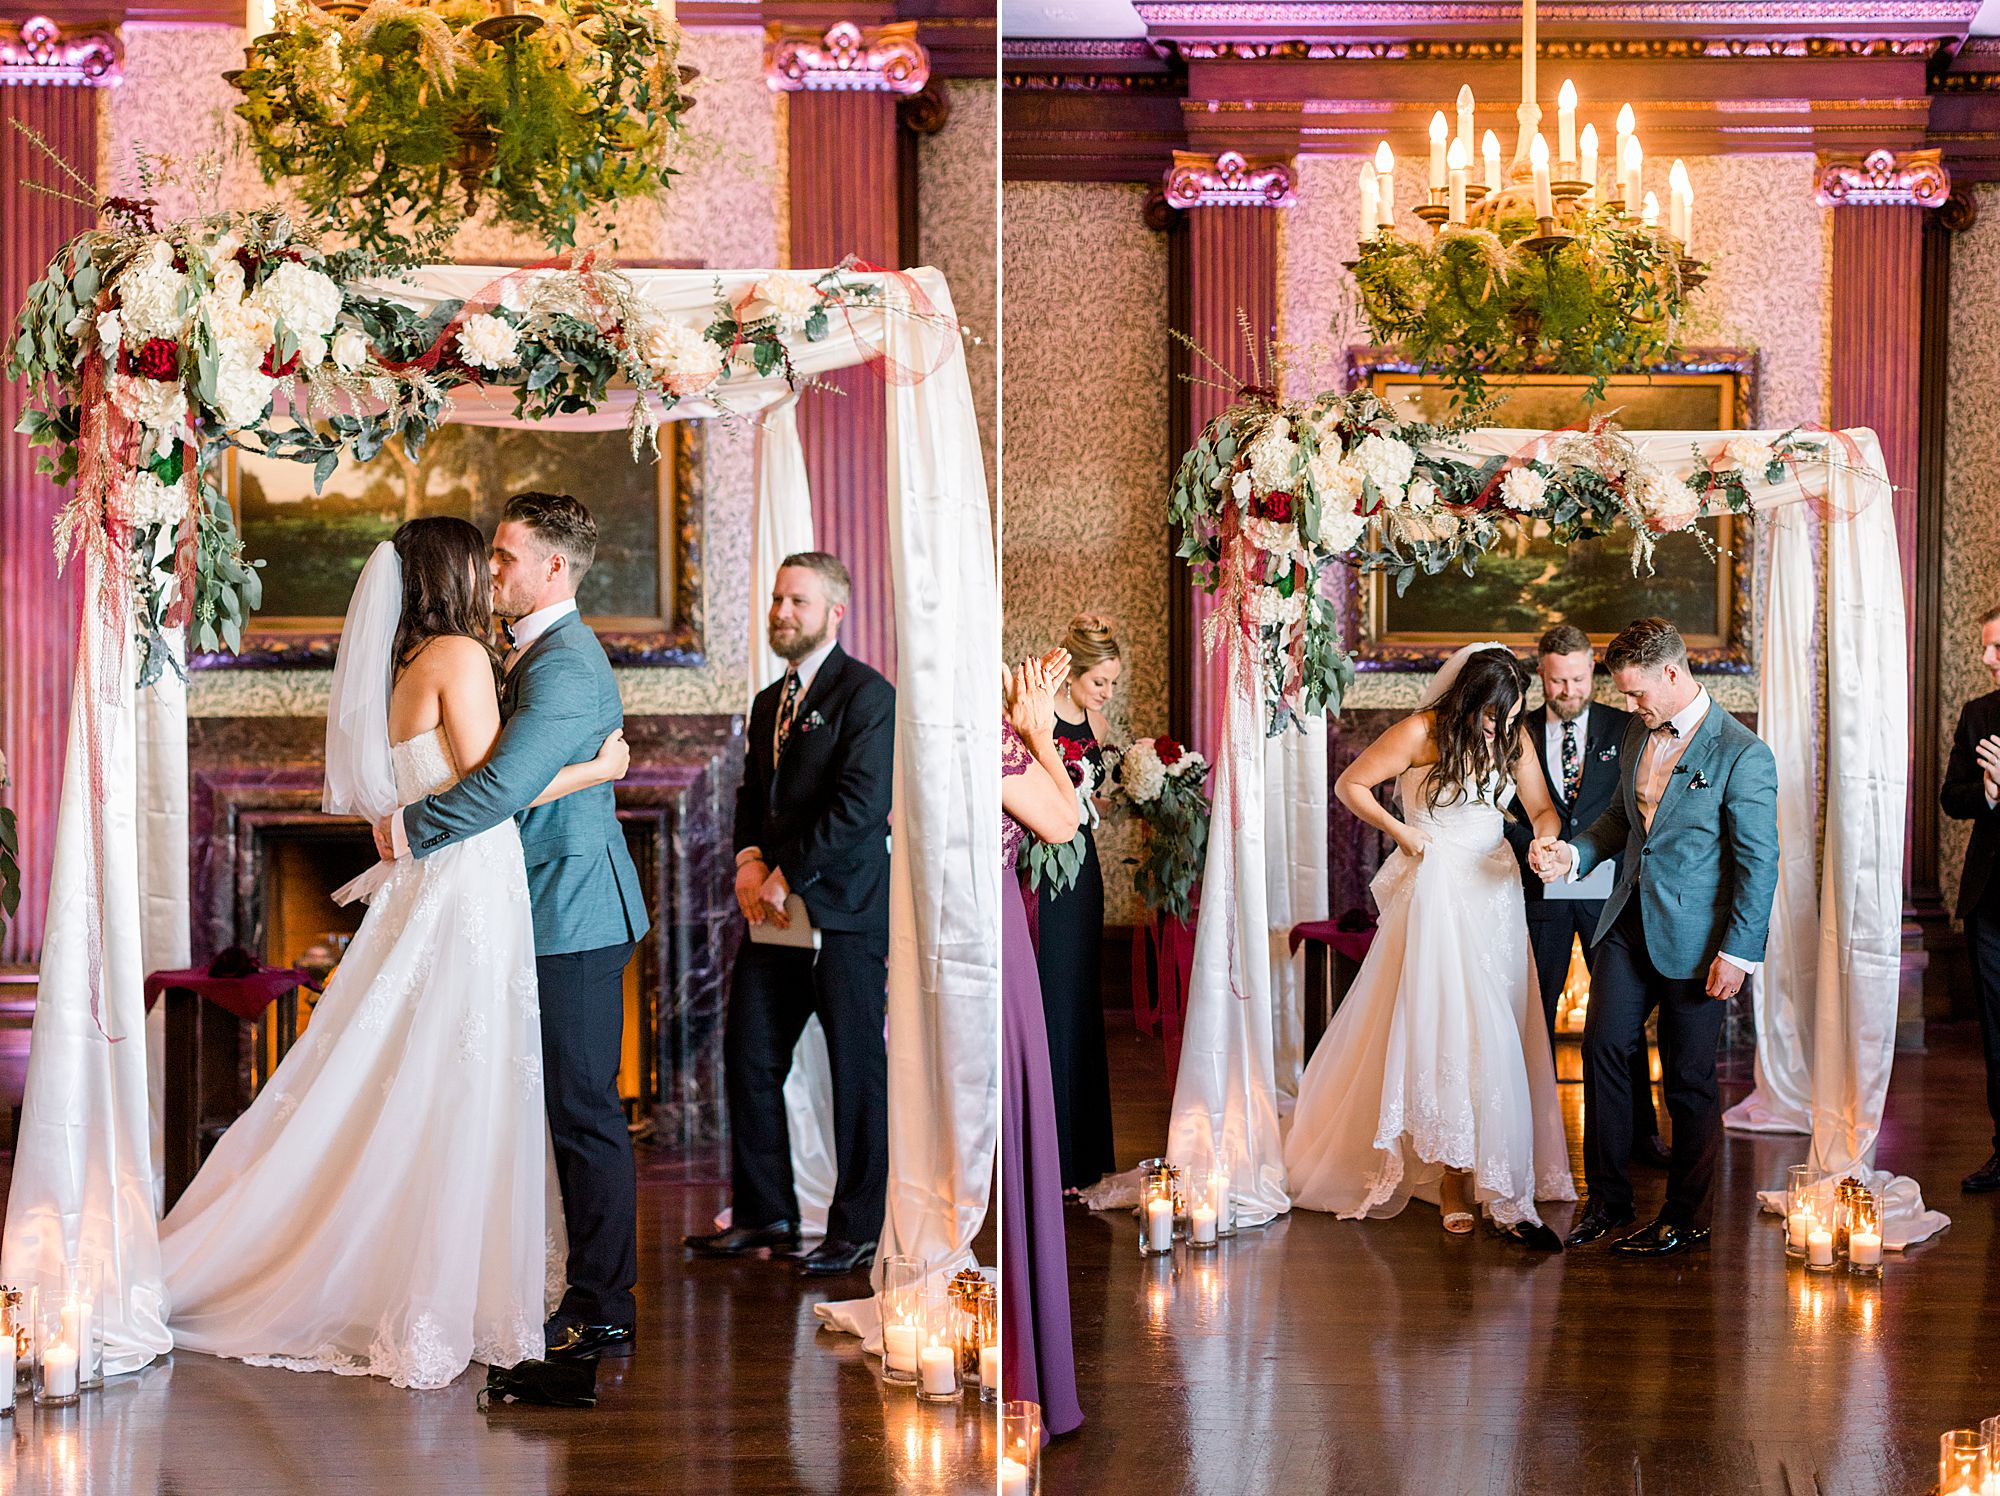 University Club Wedding in San Francisco - Cortney and Jon - San Francisco Wedding - Ashley Baumgartner - SF Wedding Photographer_0099.jpg